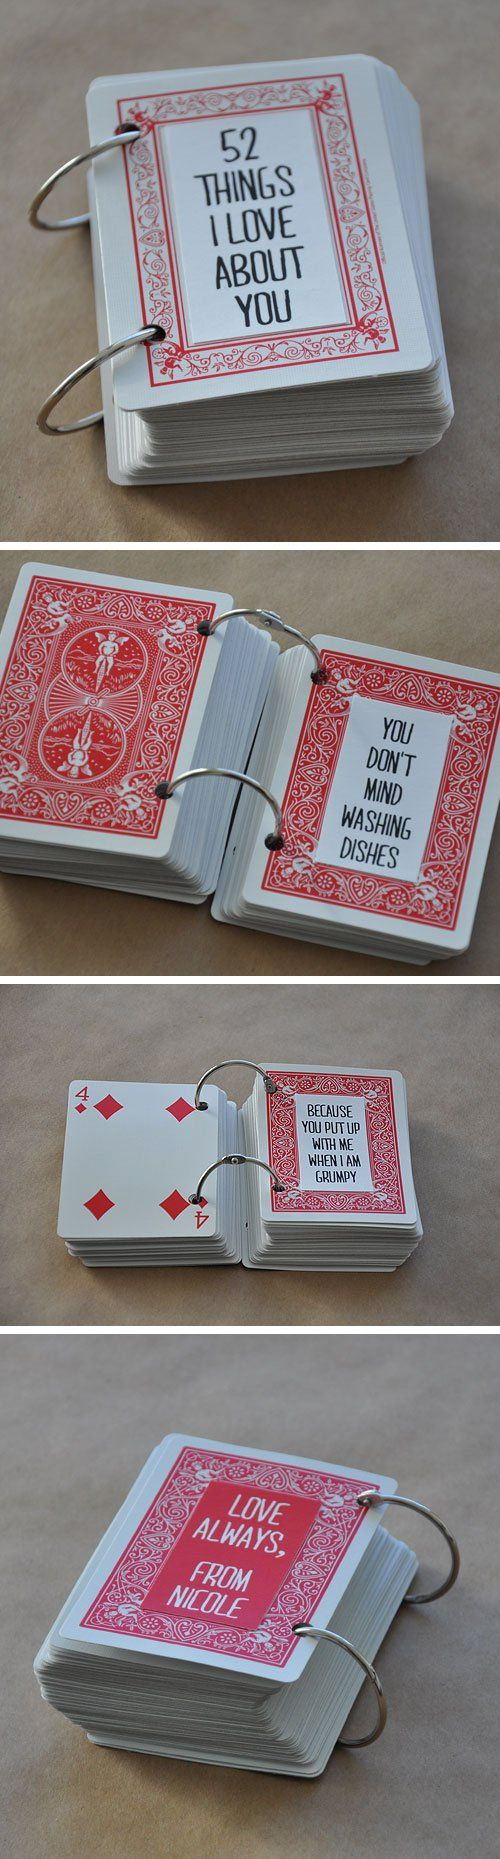 make a cute gift out of a 52 card deck. Ive got lots of ideas from this!